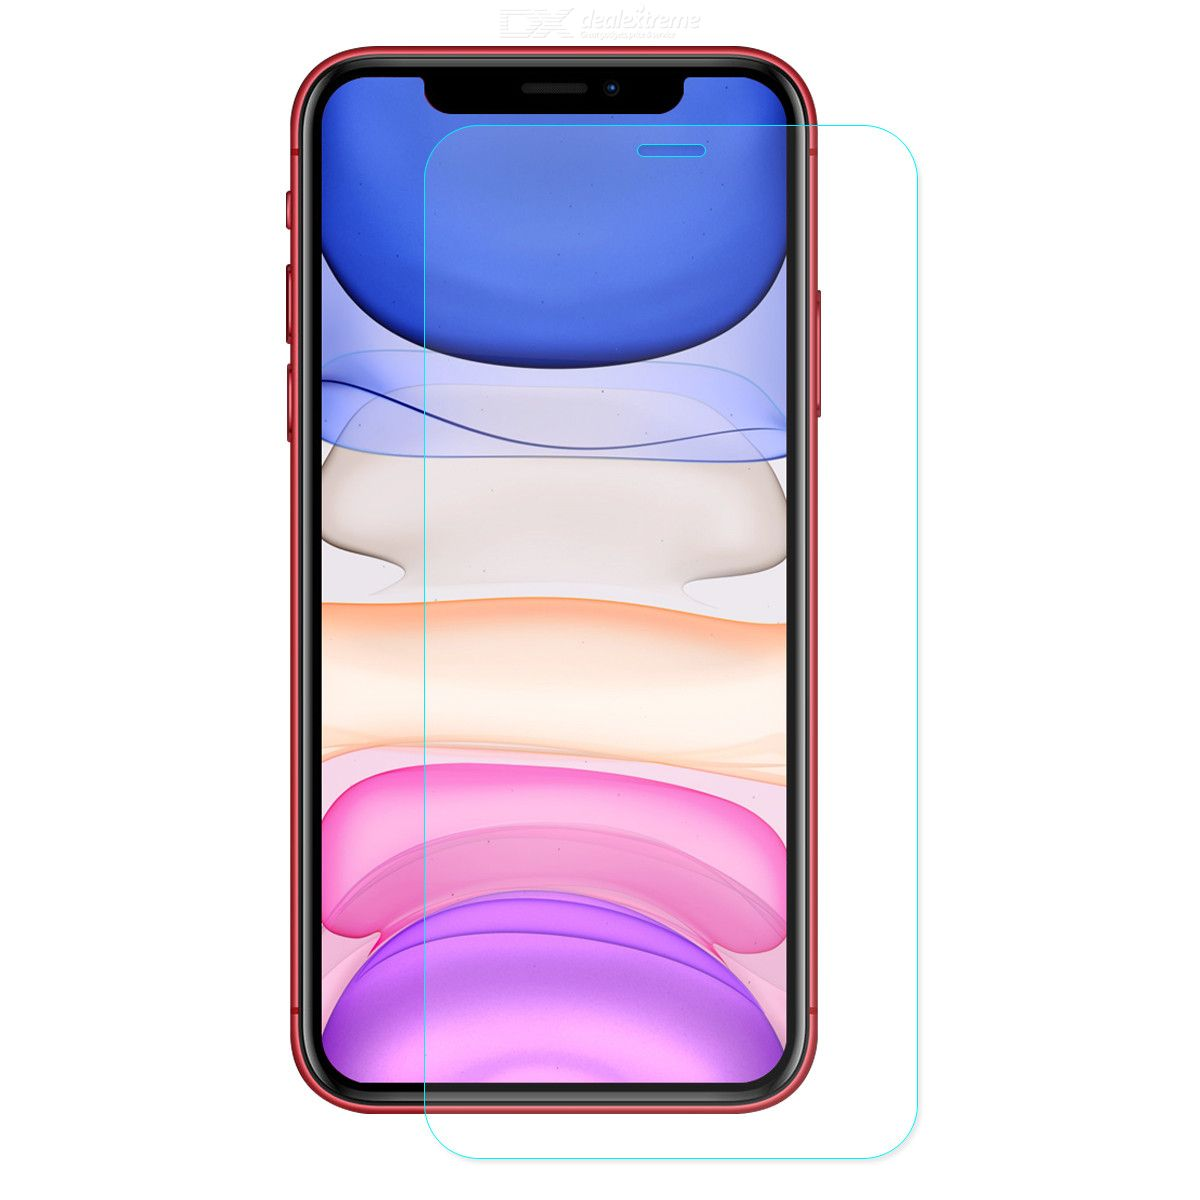 Tempered Glass 0.26mm 9H 2.5D Arc Edge Crystal Clear Tempered Glass Screen Protector for iPhone 11/XR